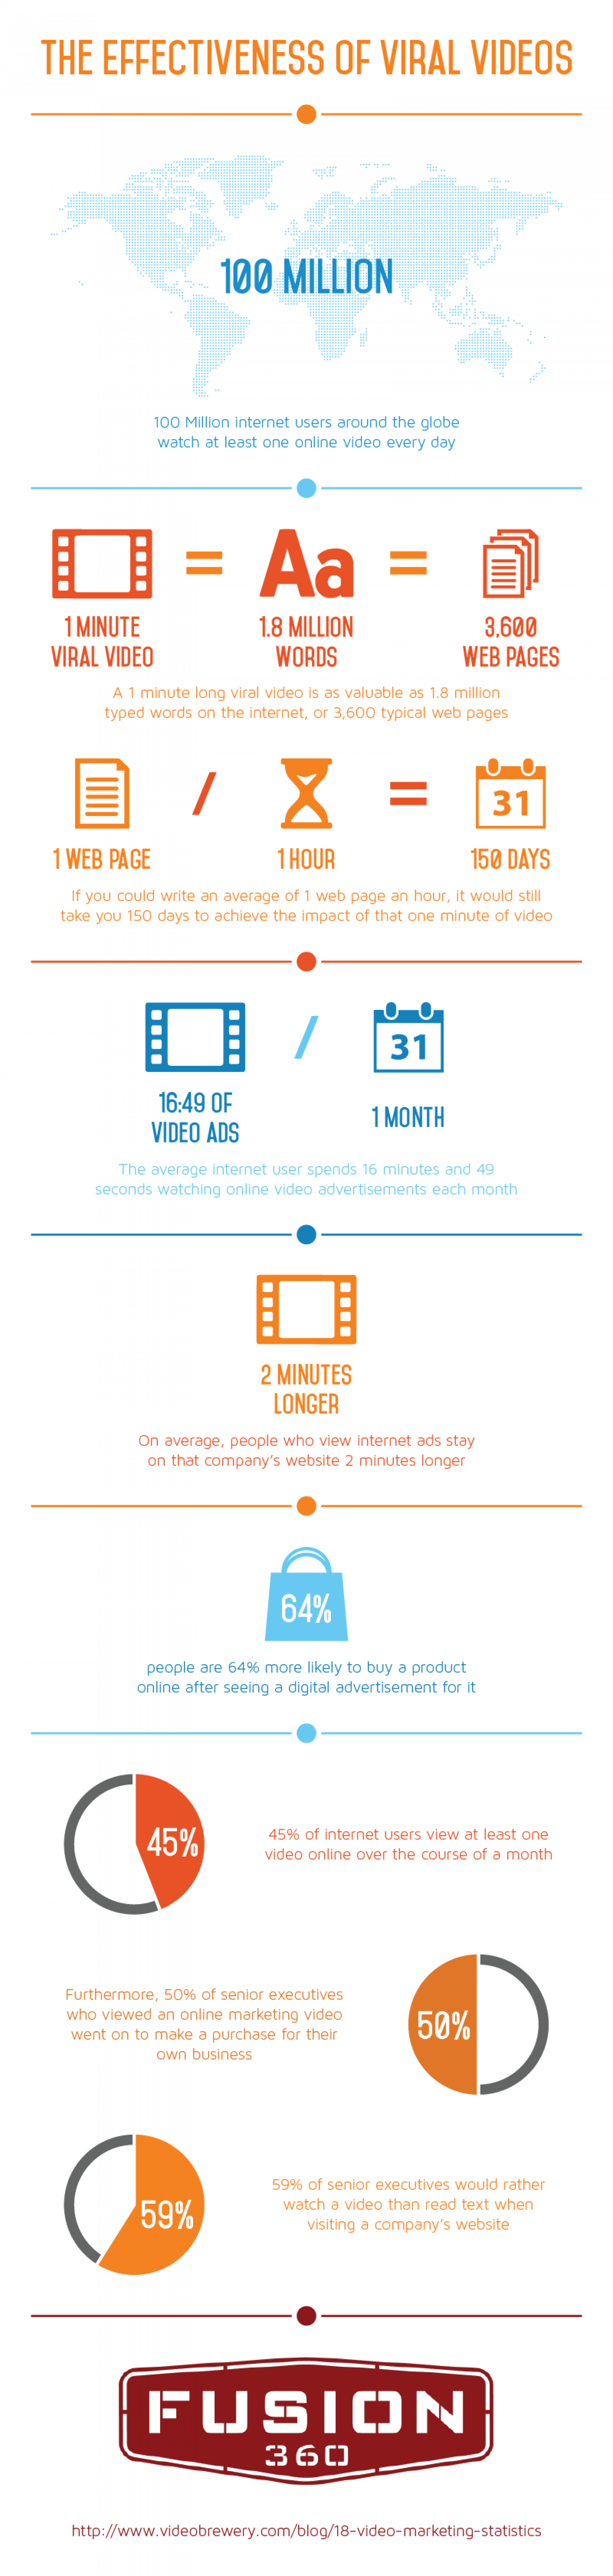 The Effectiveness of Viral Videos Infographic